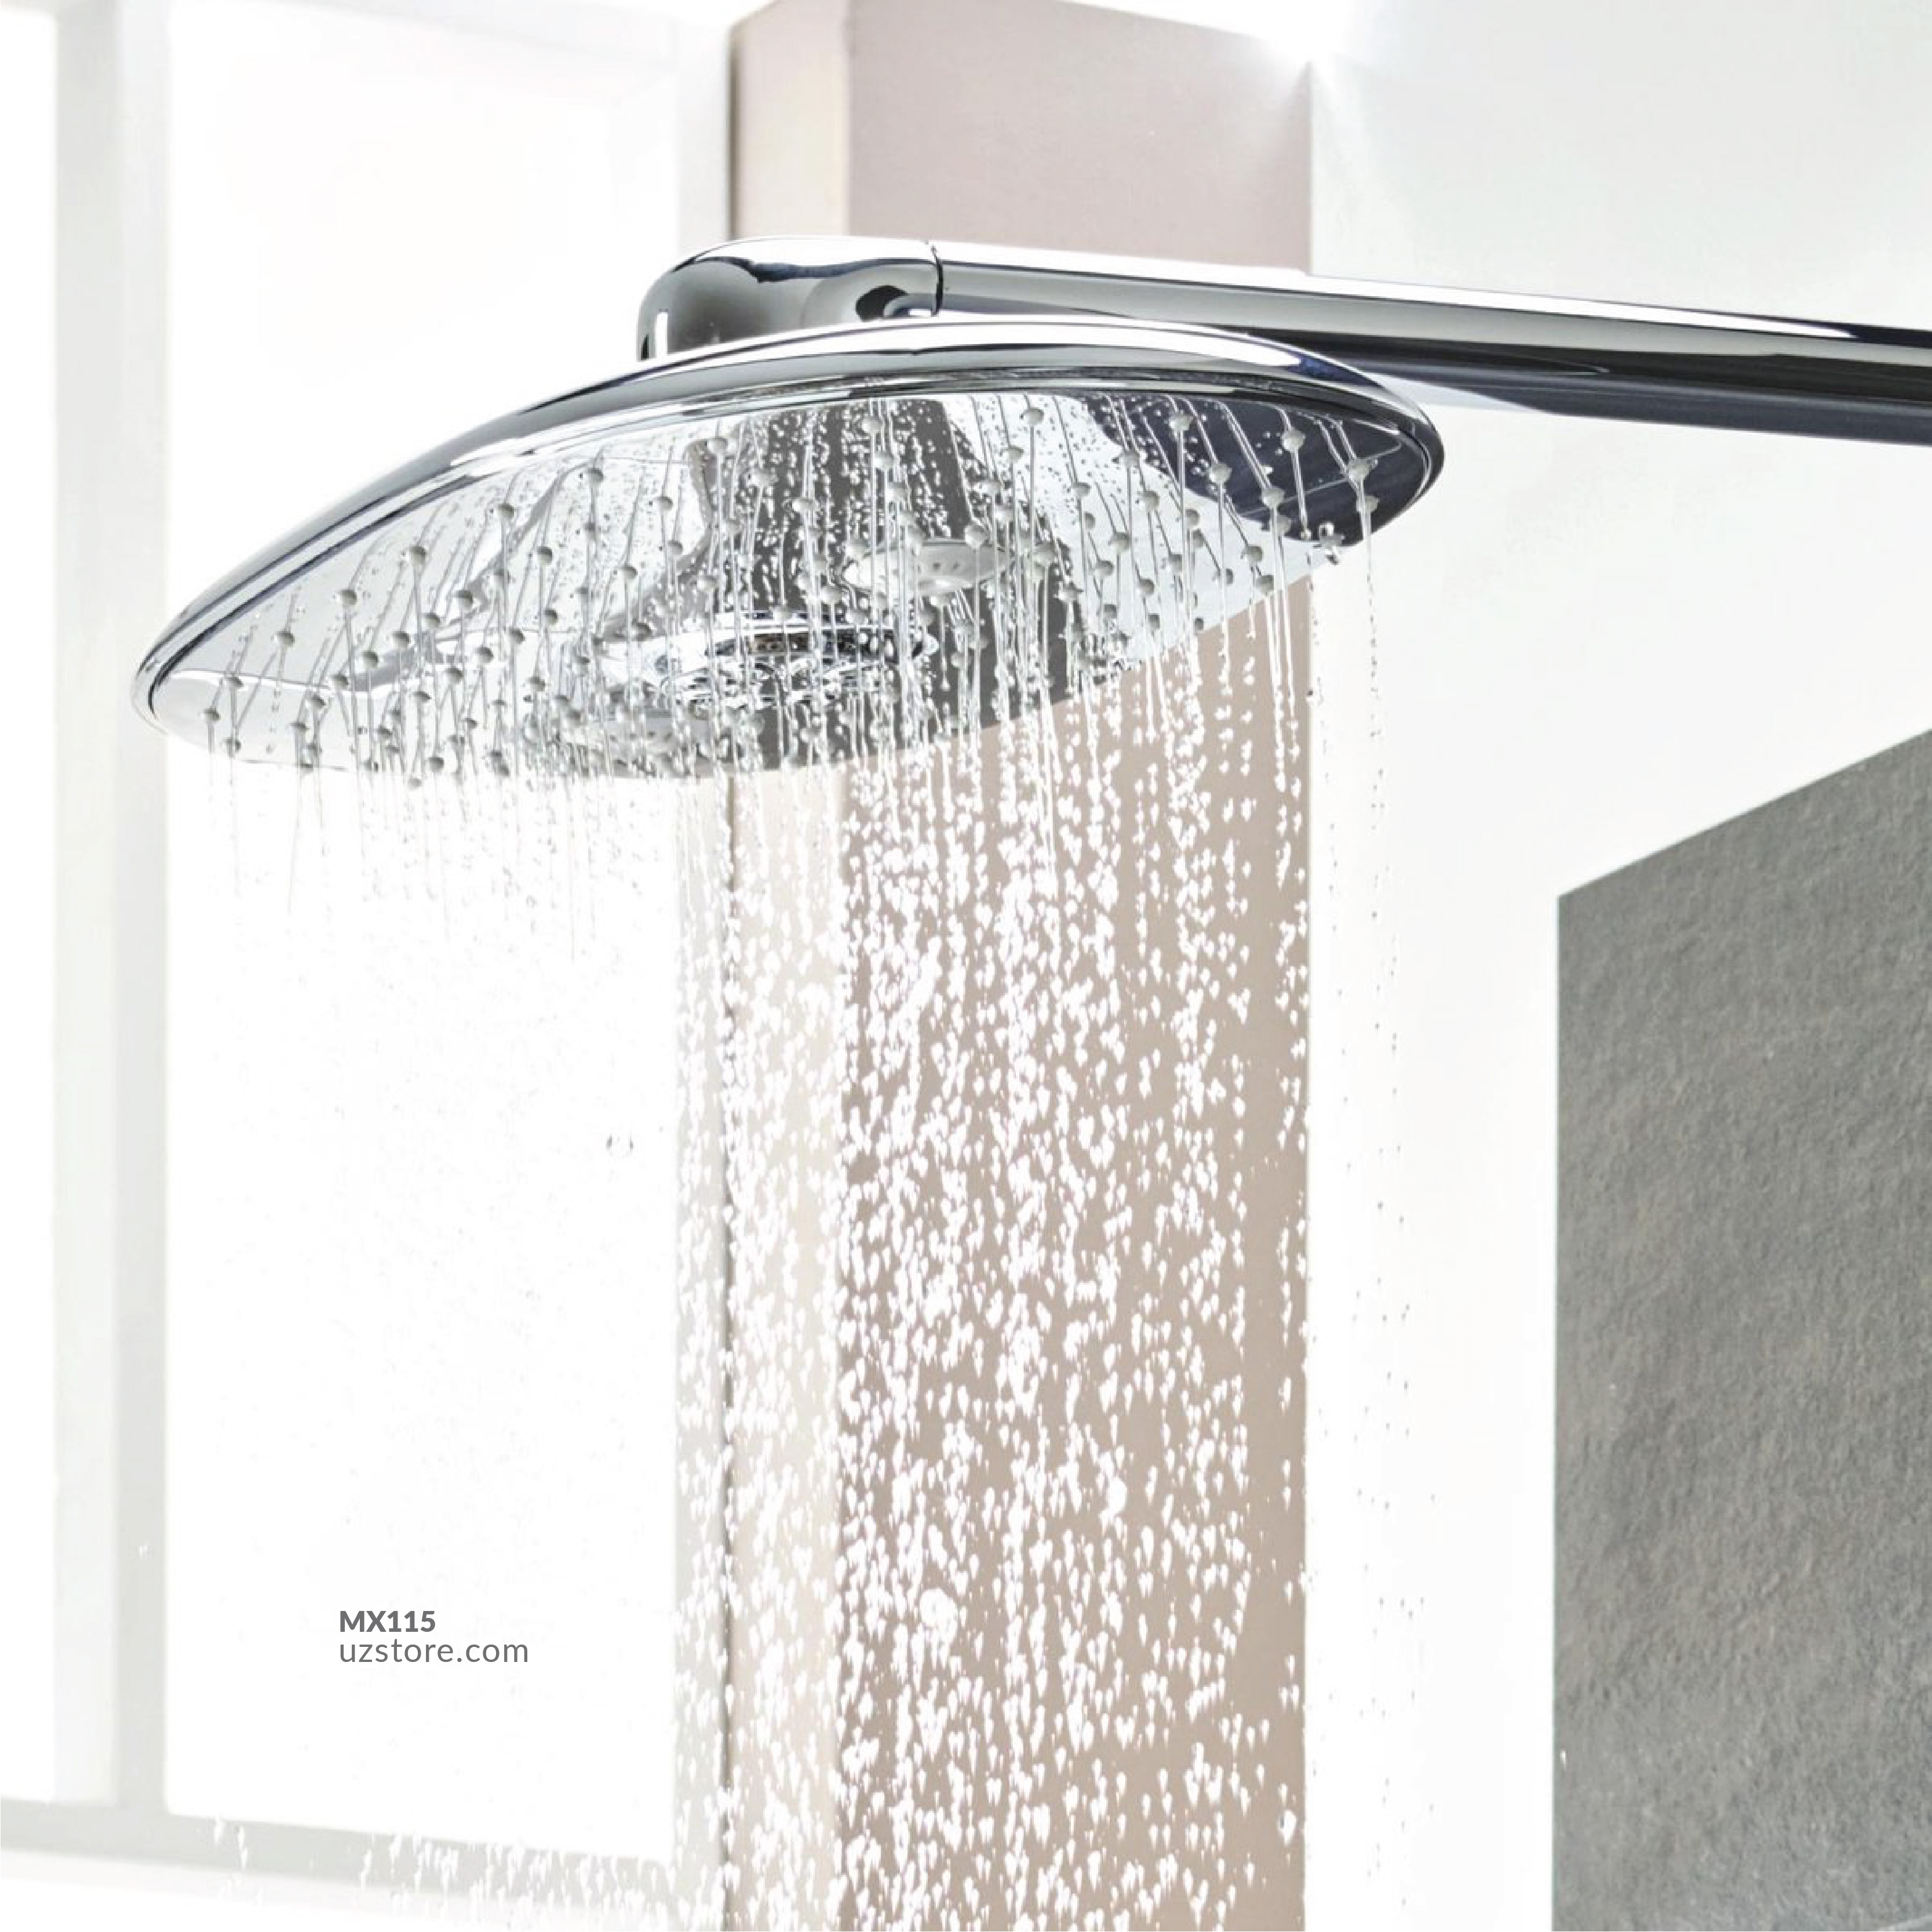 Grohe Rain sgower system smartcontrol 360 duo with safety mixer for wall mounting GR 26 250 000